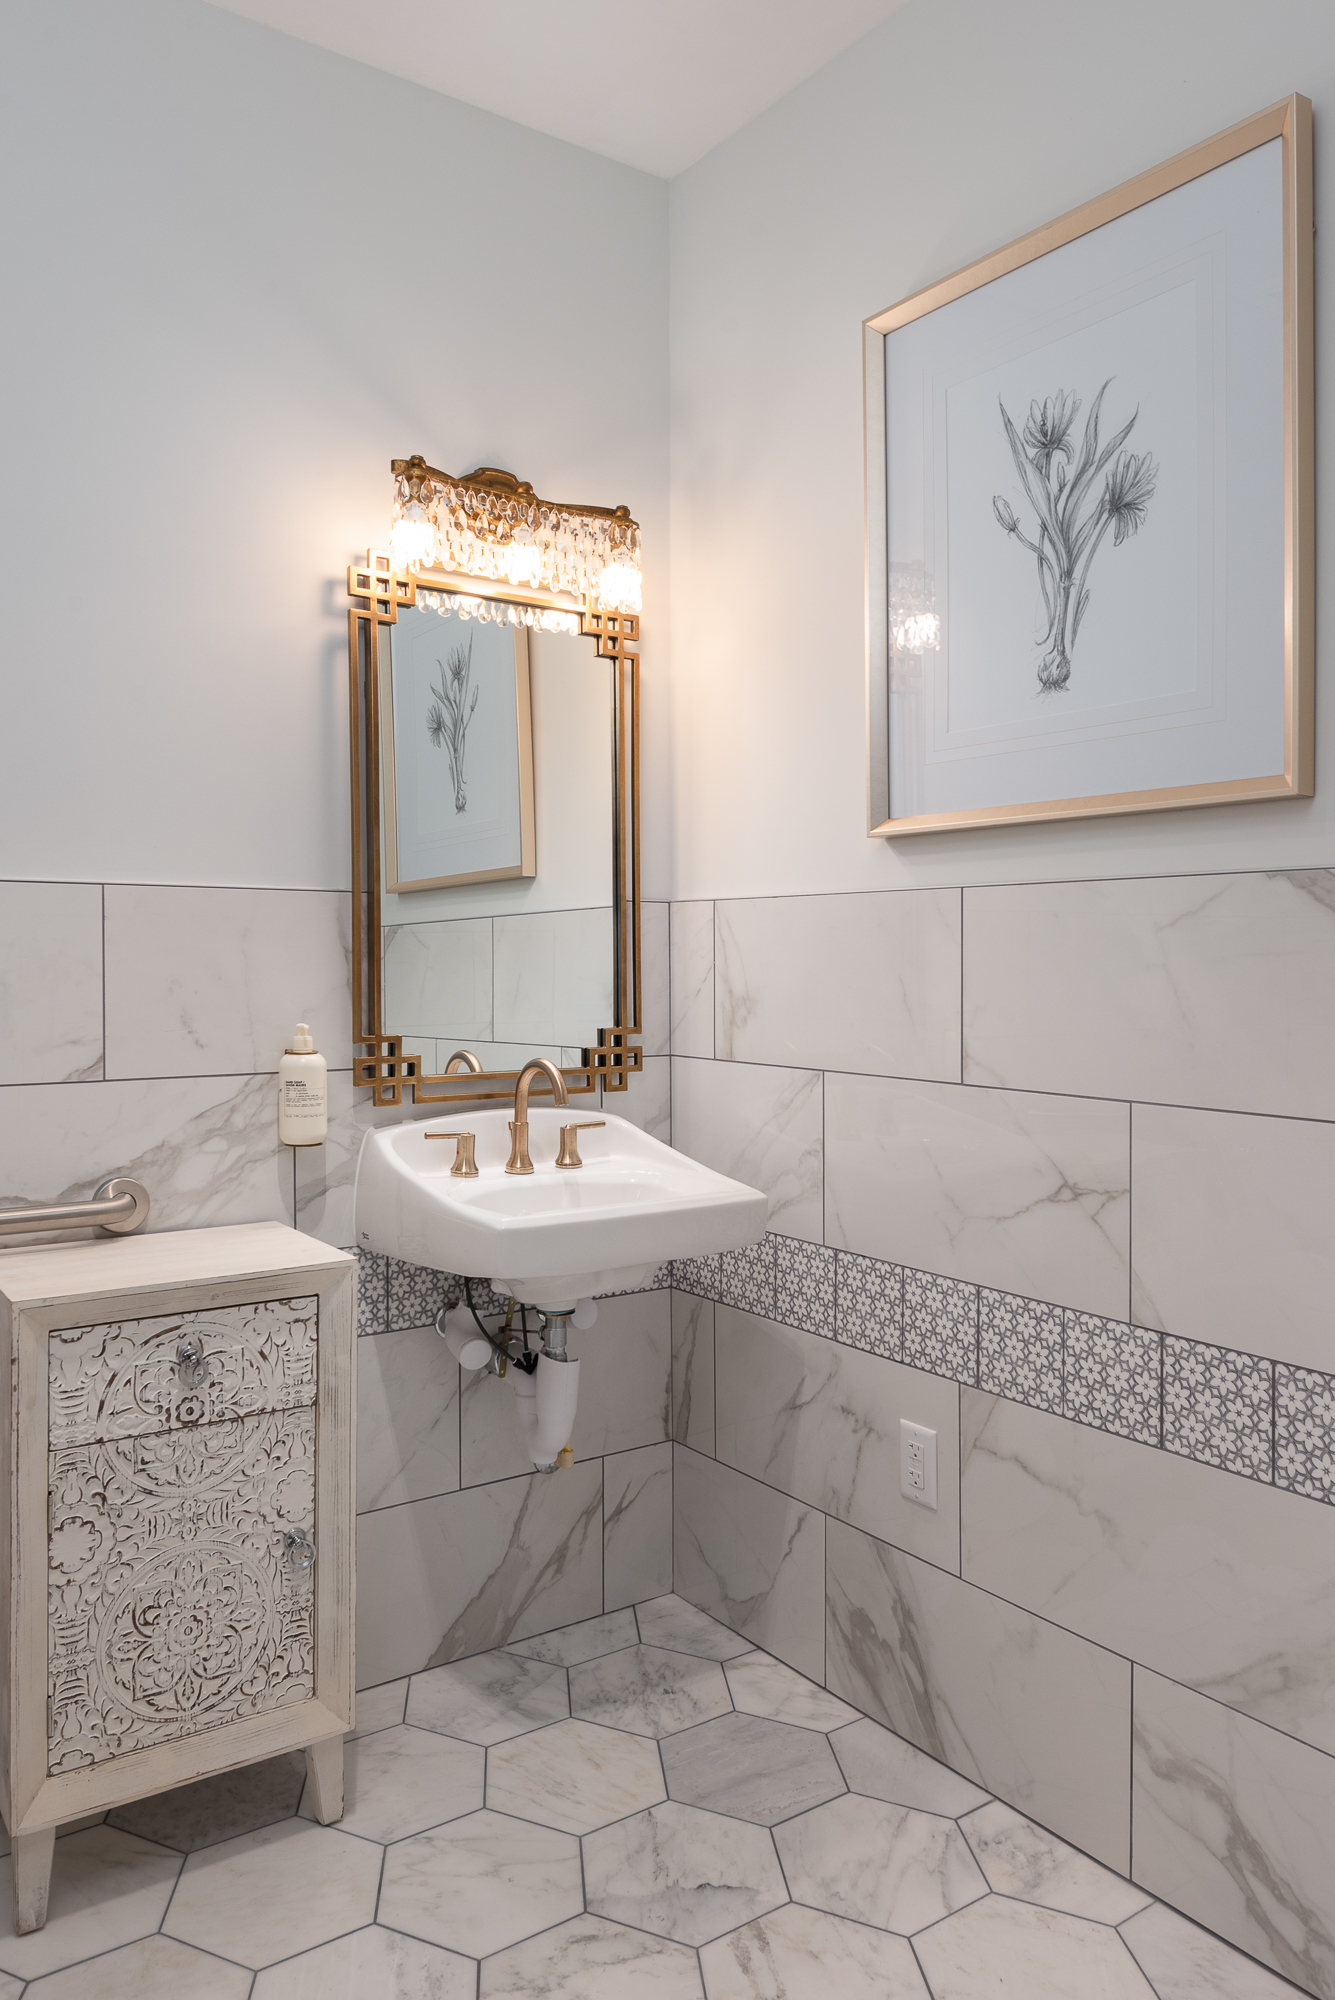 Micamy Design Studio_Interior Design_Clay Theatre_Event Space_Venue_Marble_Art Deco_Modern_Bridal Suite_Tile_Flower_Bathroom (2).jpg